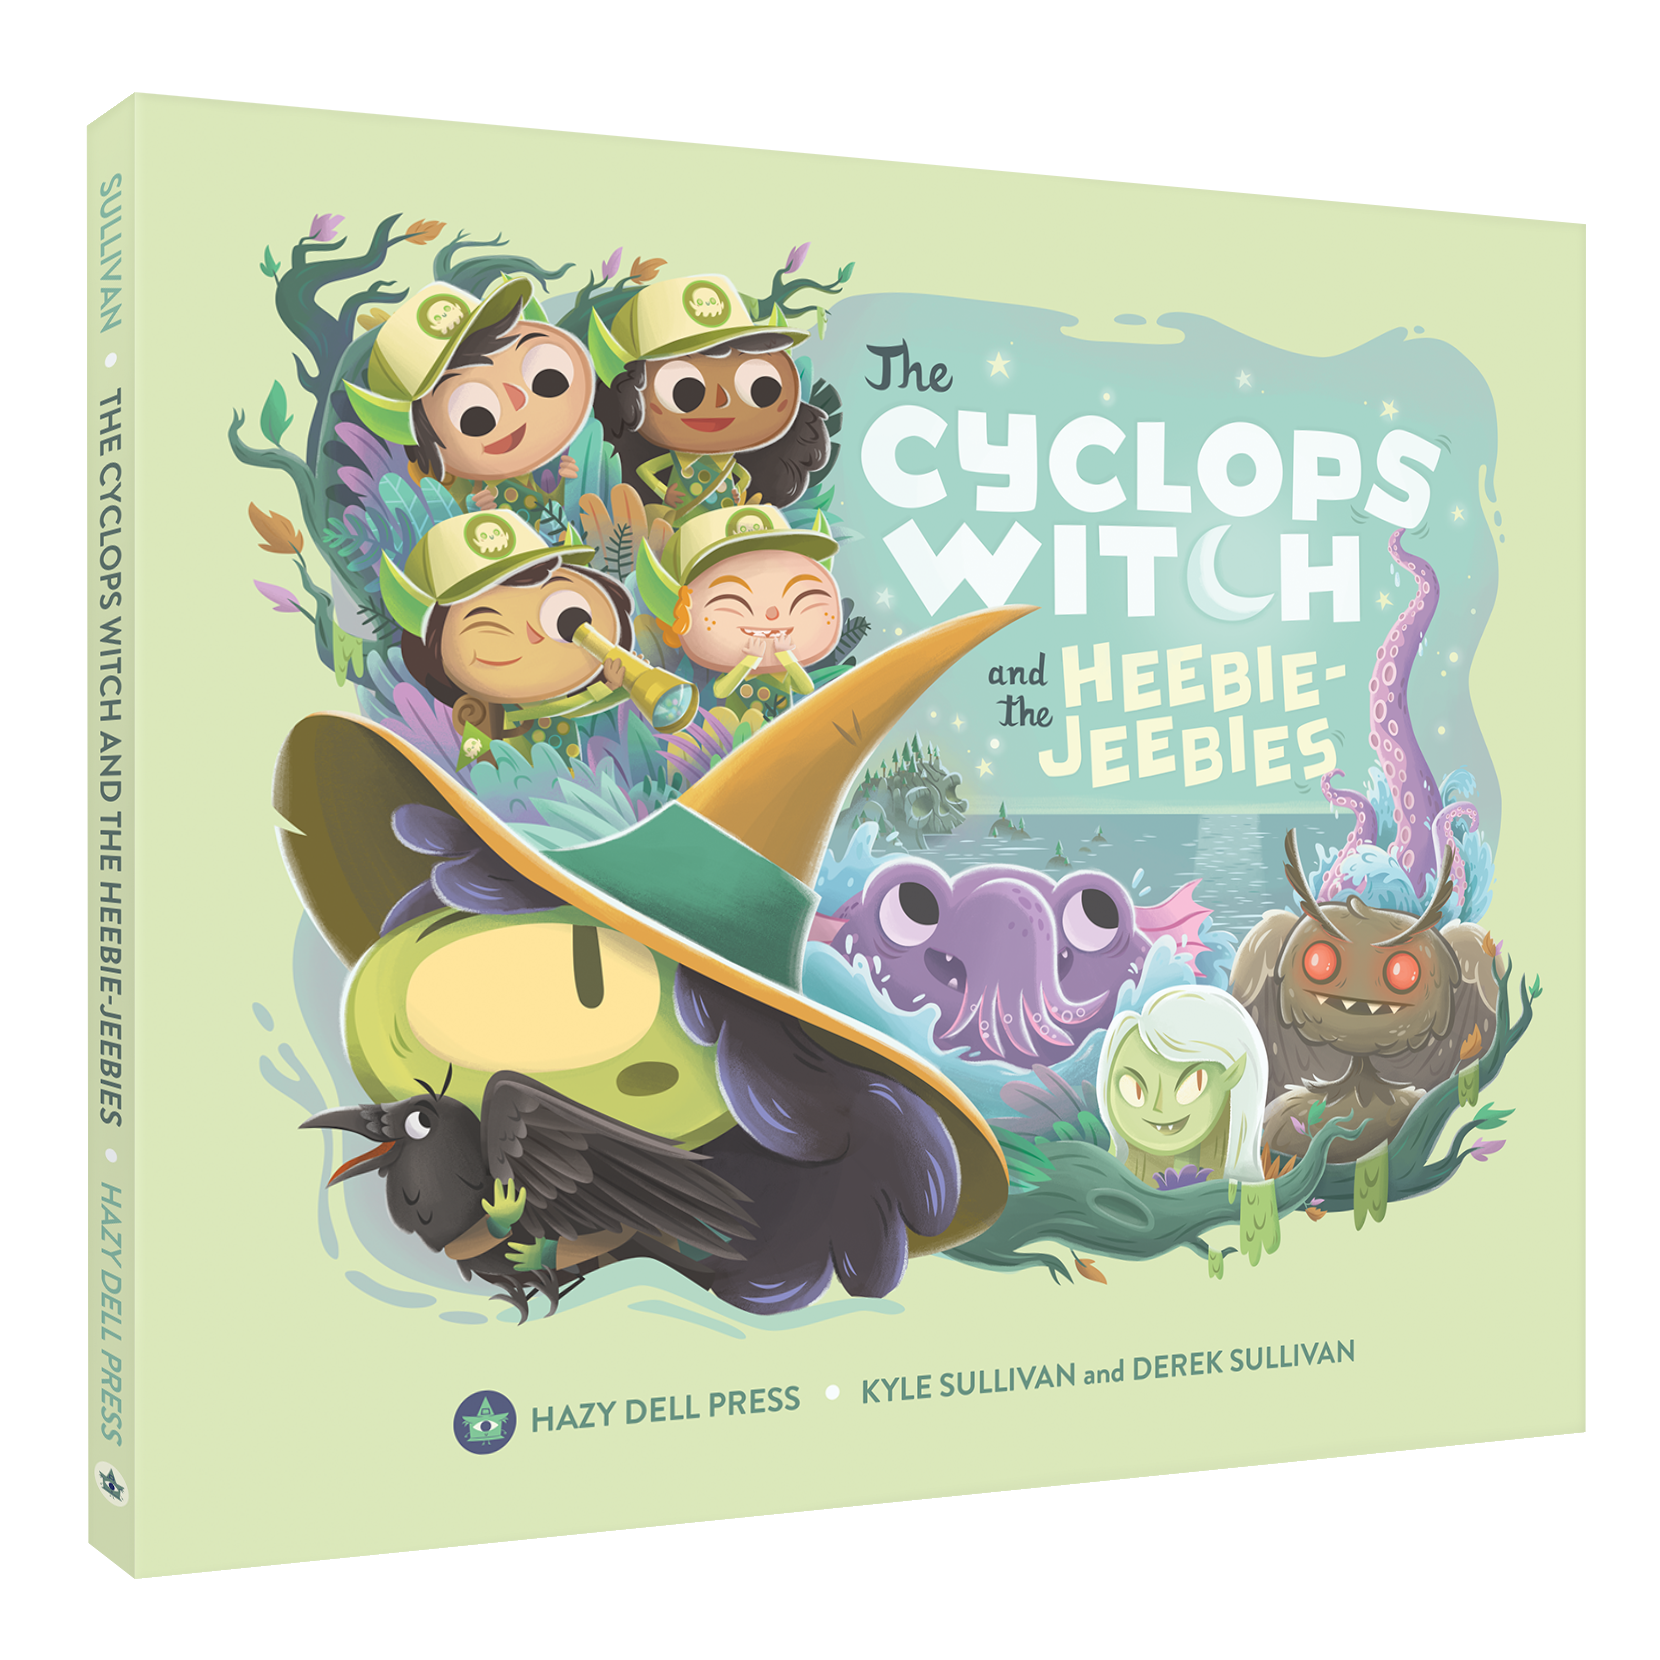 Kyle and Derek Sullivan's picture book  The Cyclops Witch and the Heebie-Jeebies , featuring the Hobgoblin character. Hazy Dell Press, 2019.